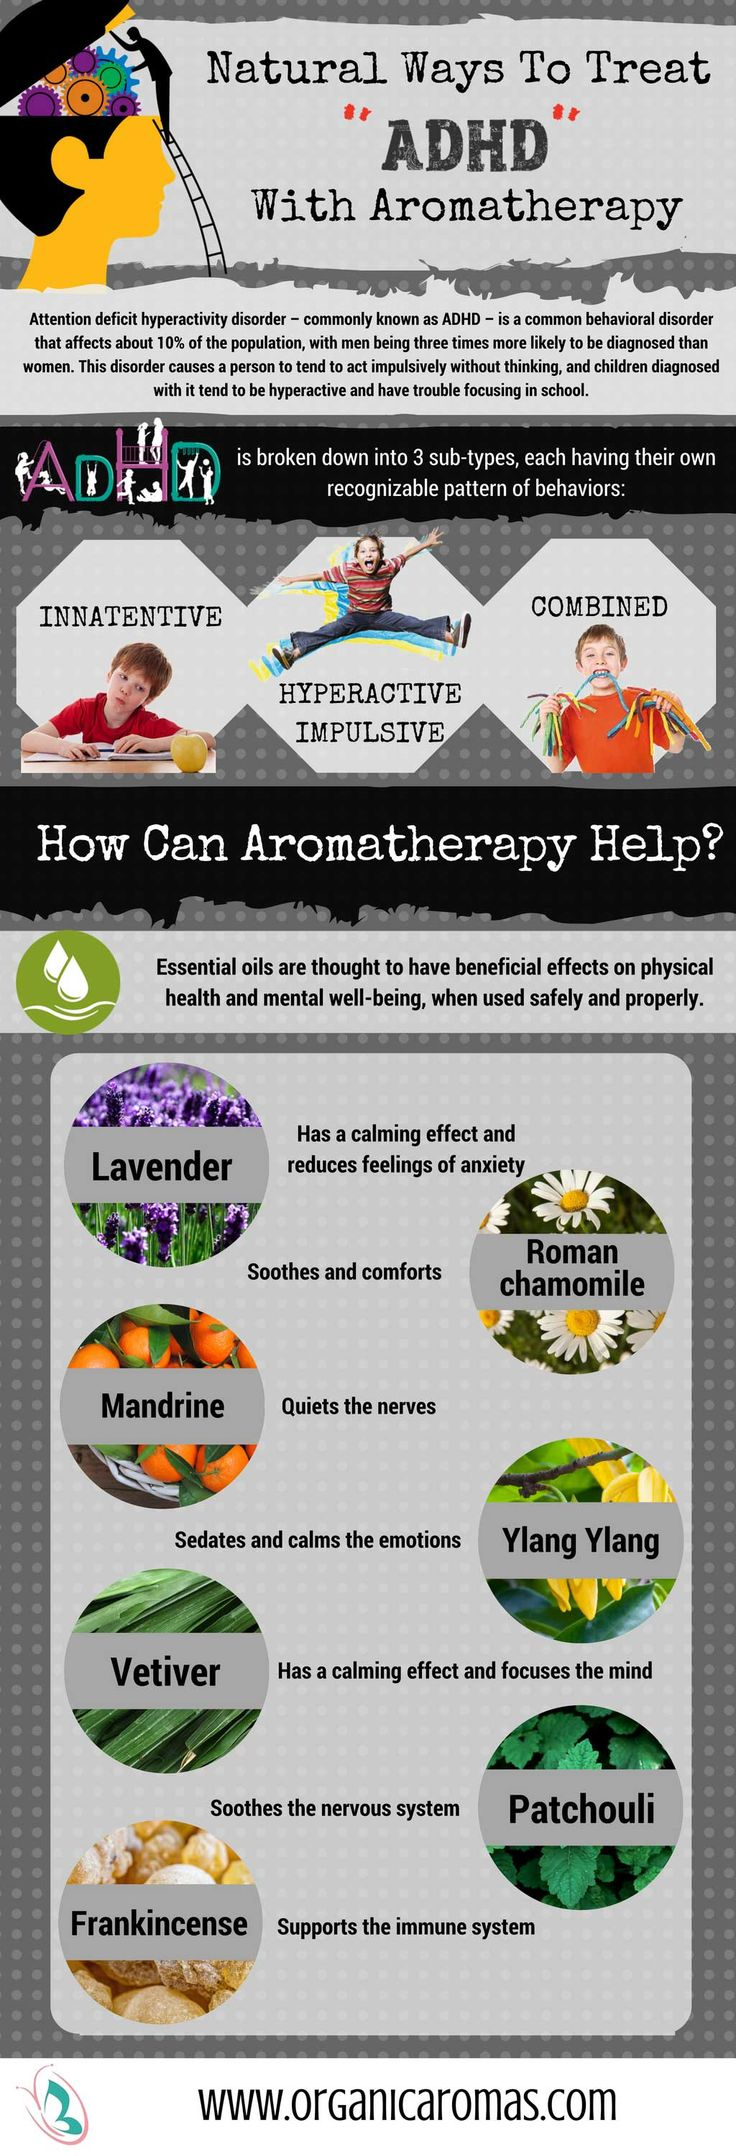 Natural Ways To Treat ADHD Using Aromatherapy - #OrganicAromas #InfoGraphic